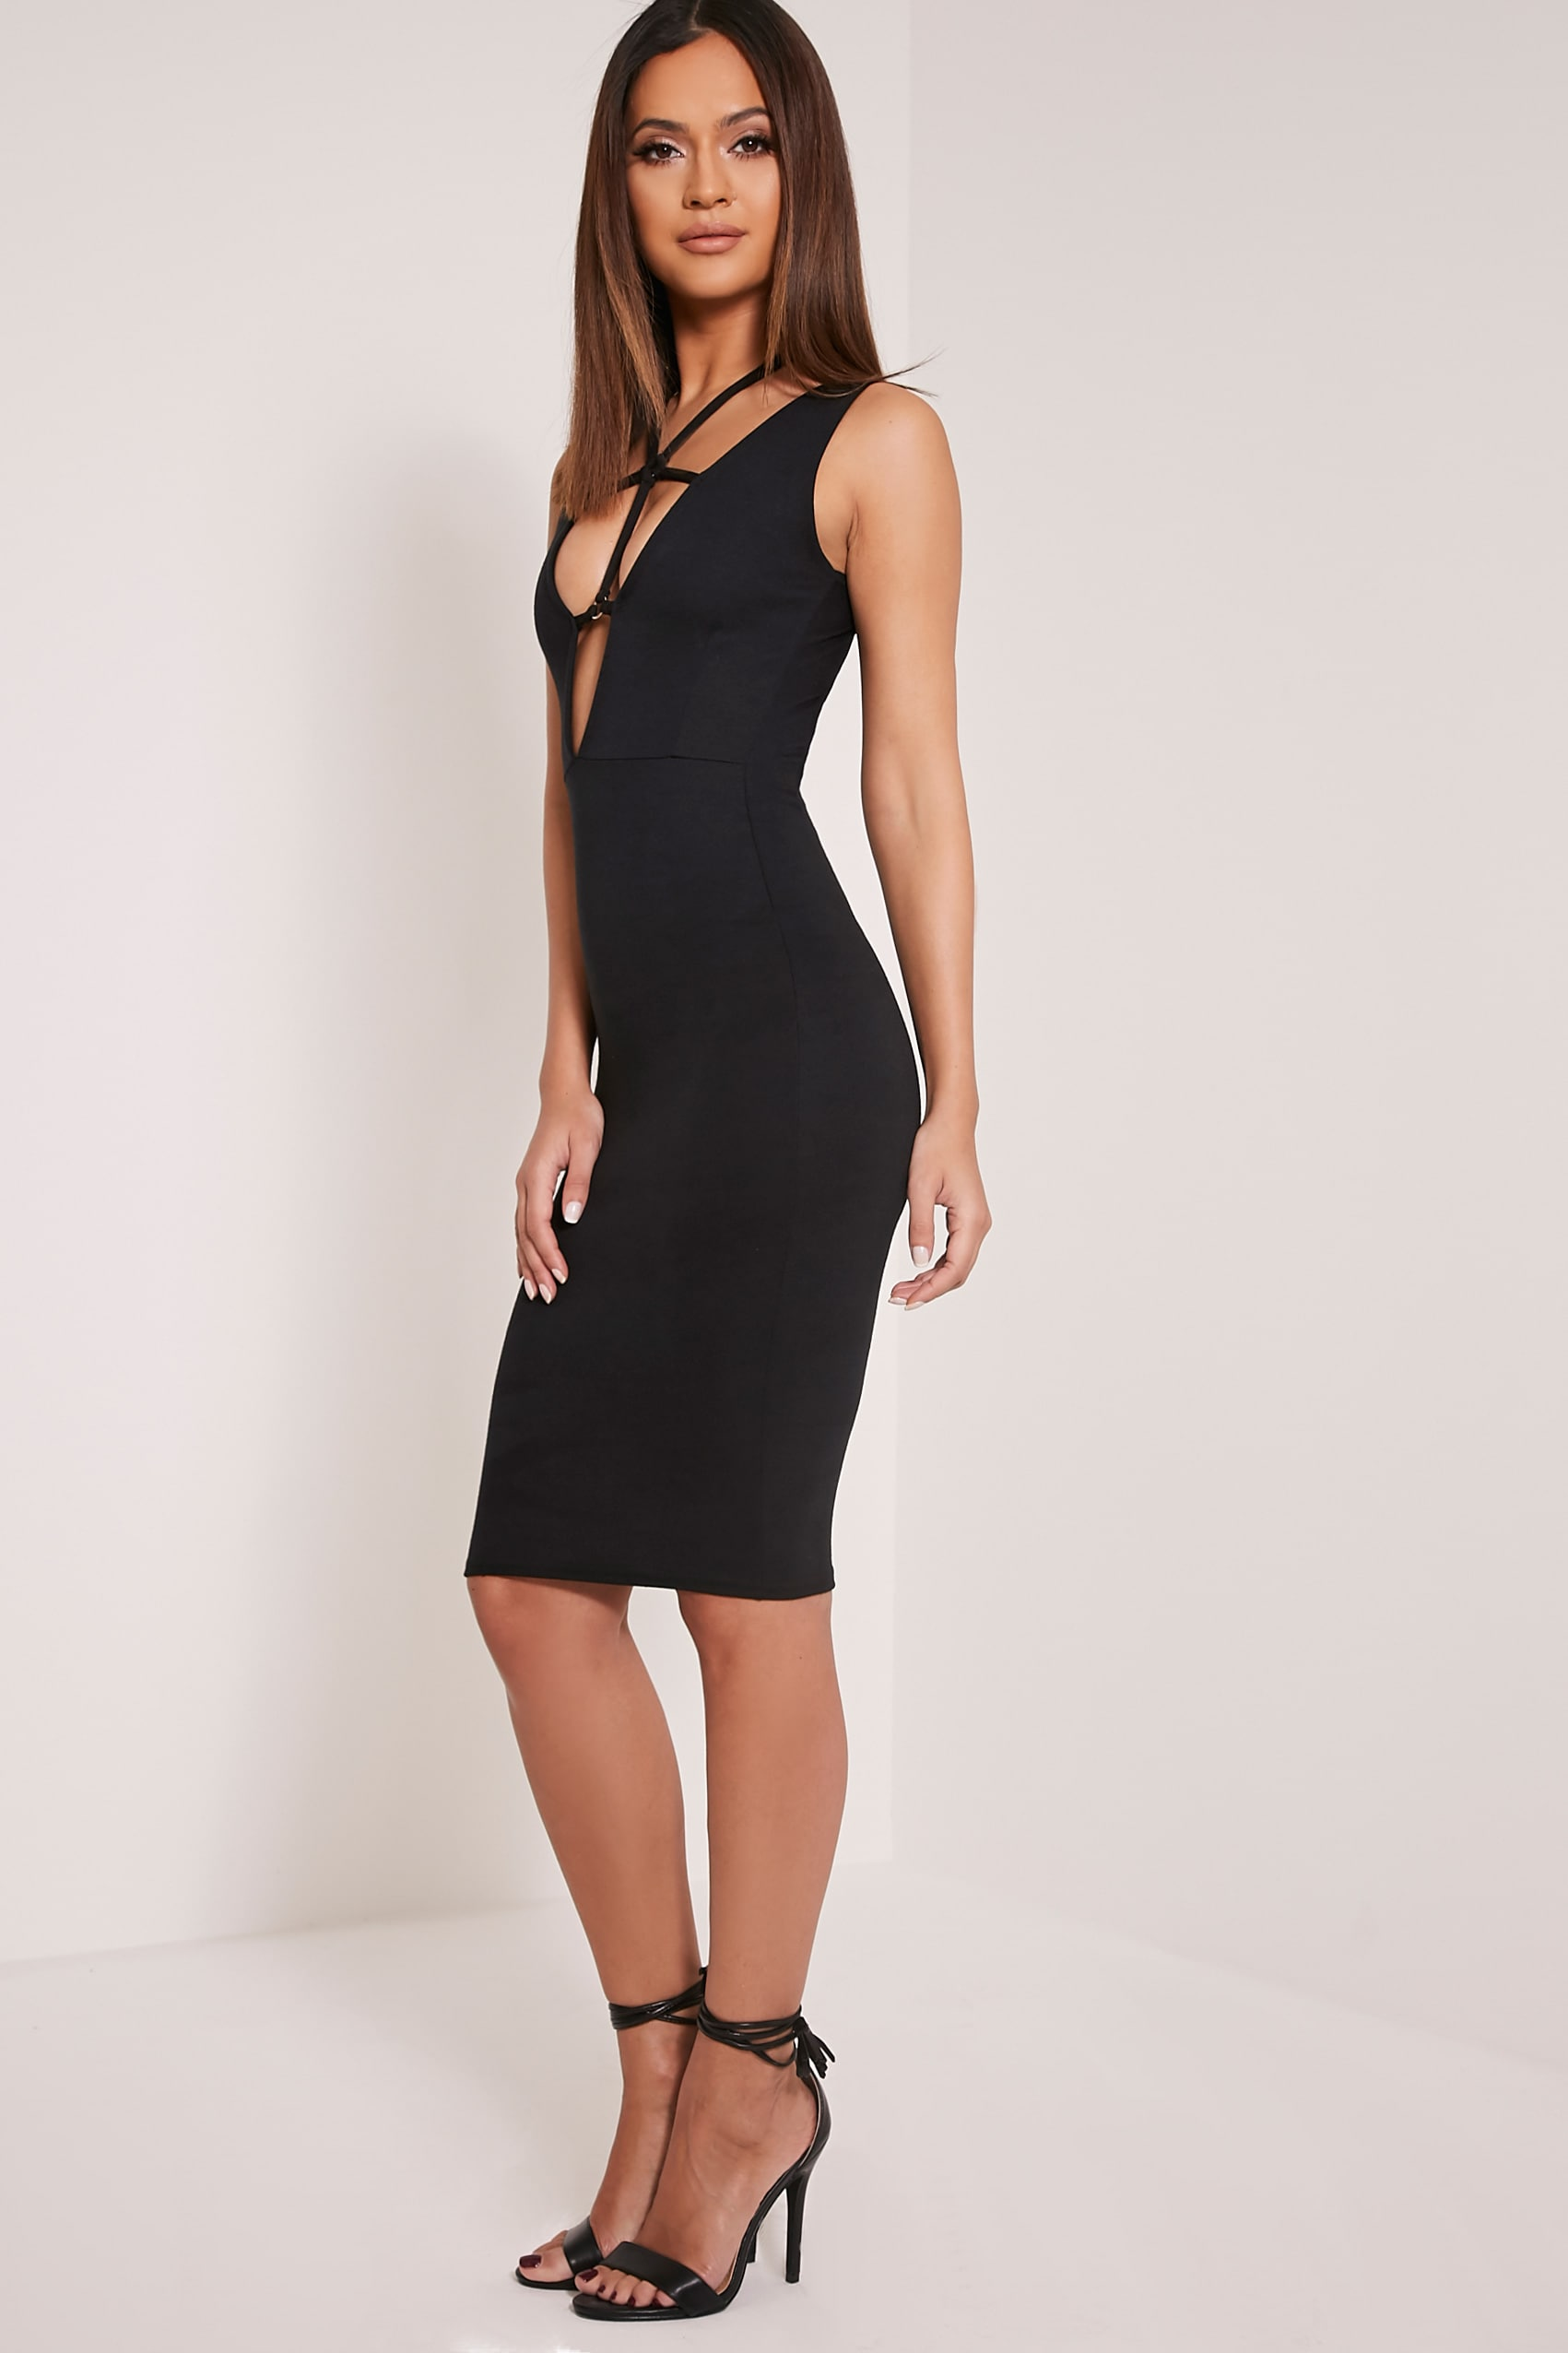 Raynie Black Sleeveless Harness Midi Dress 4